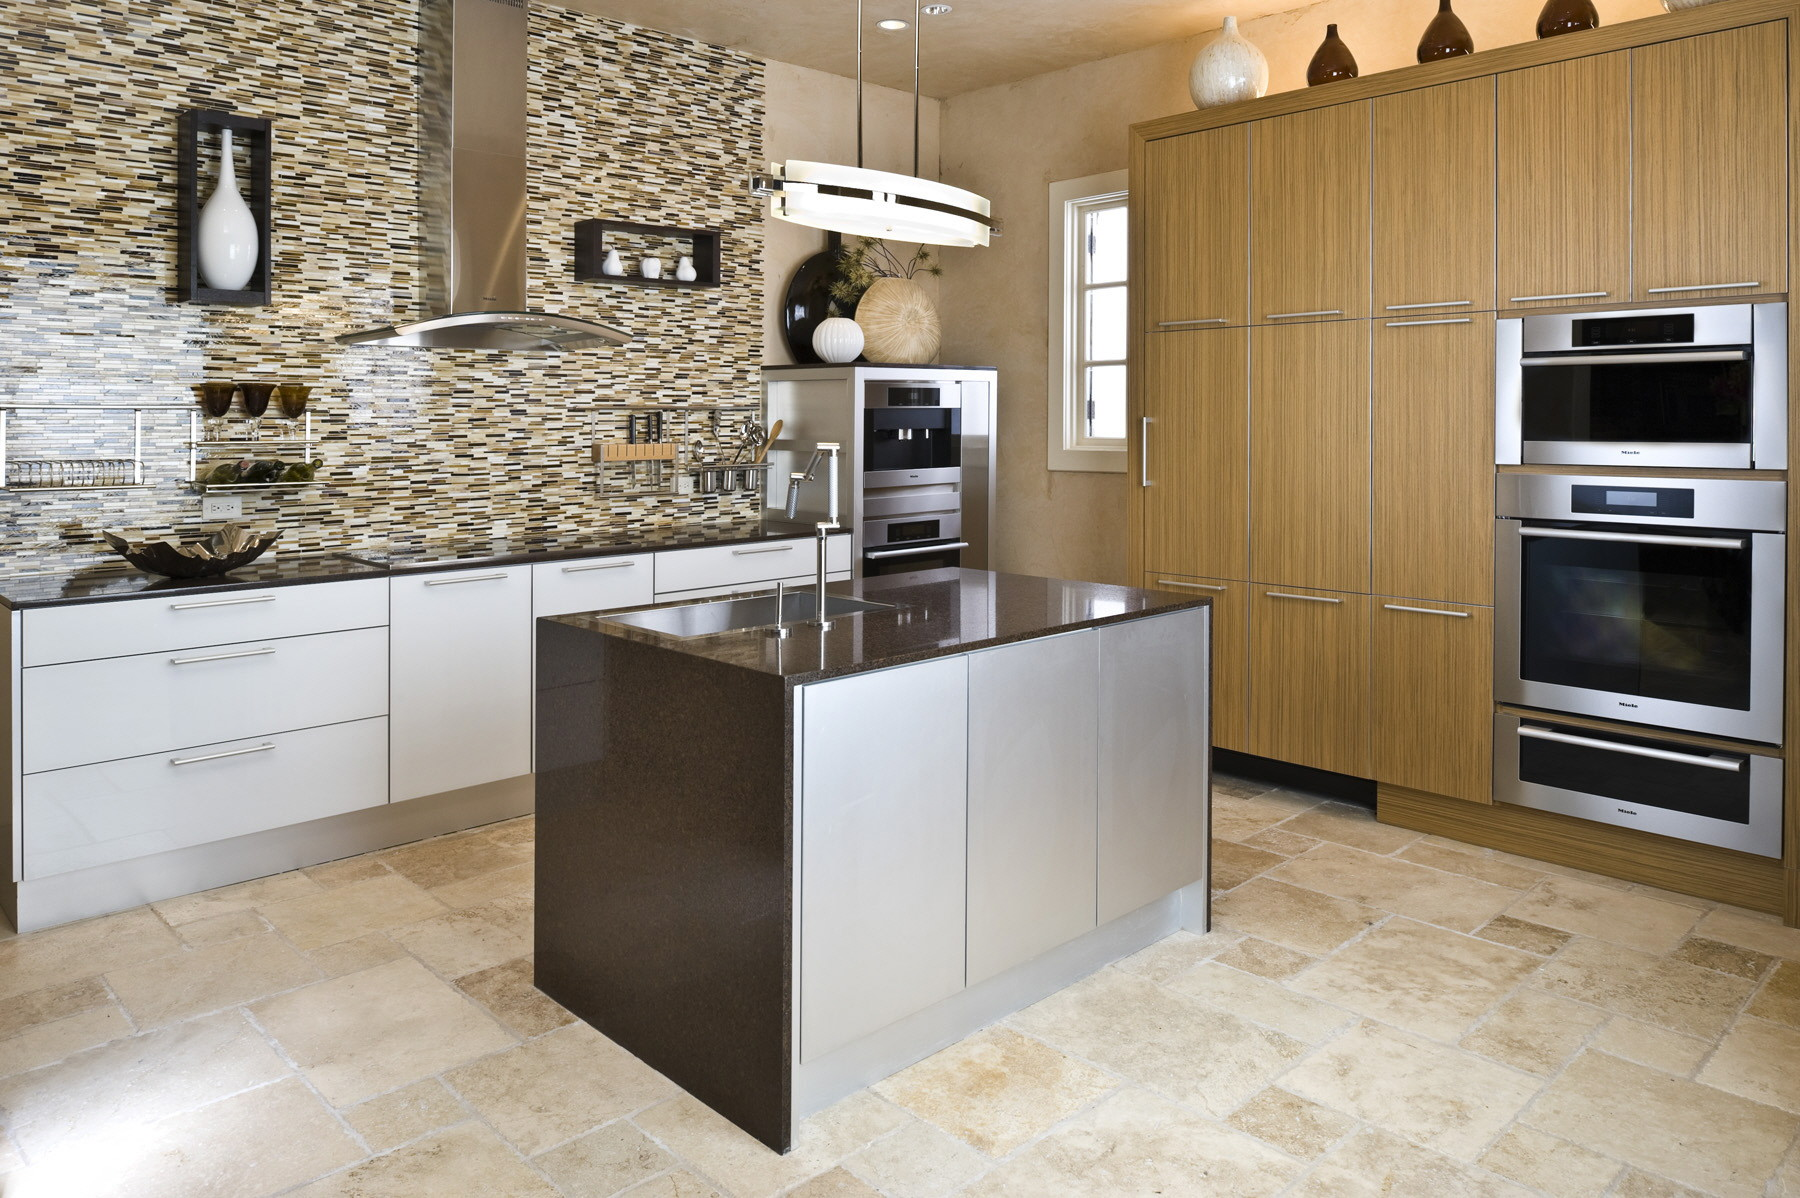 100 miele kitchen cabinets interior design images - Miele kitchen cabinets ...